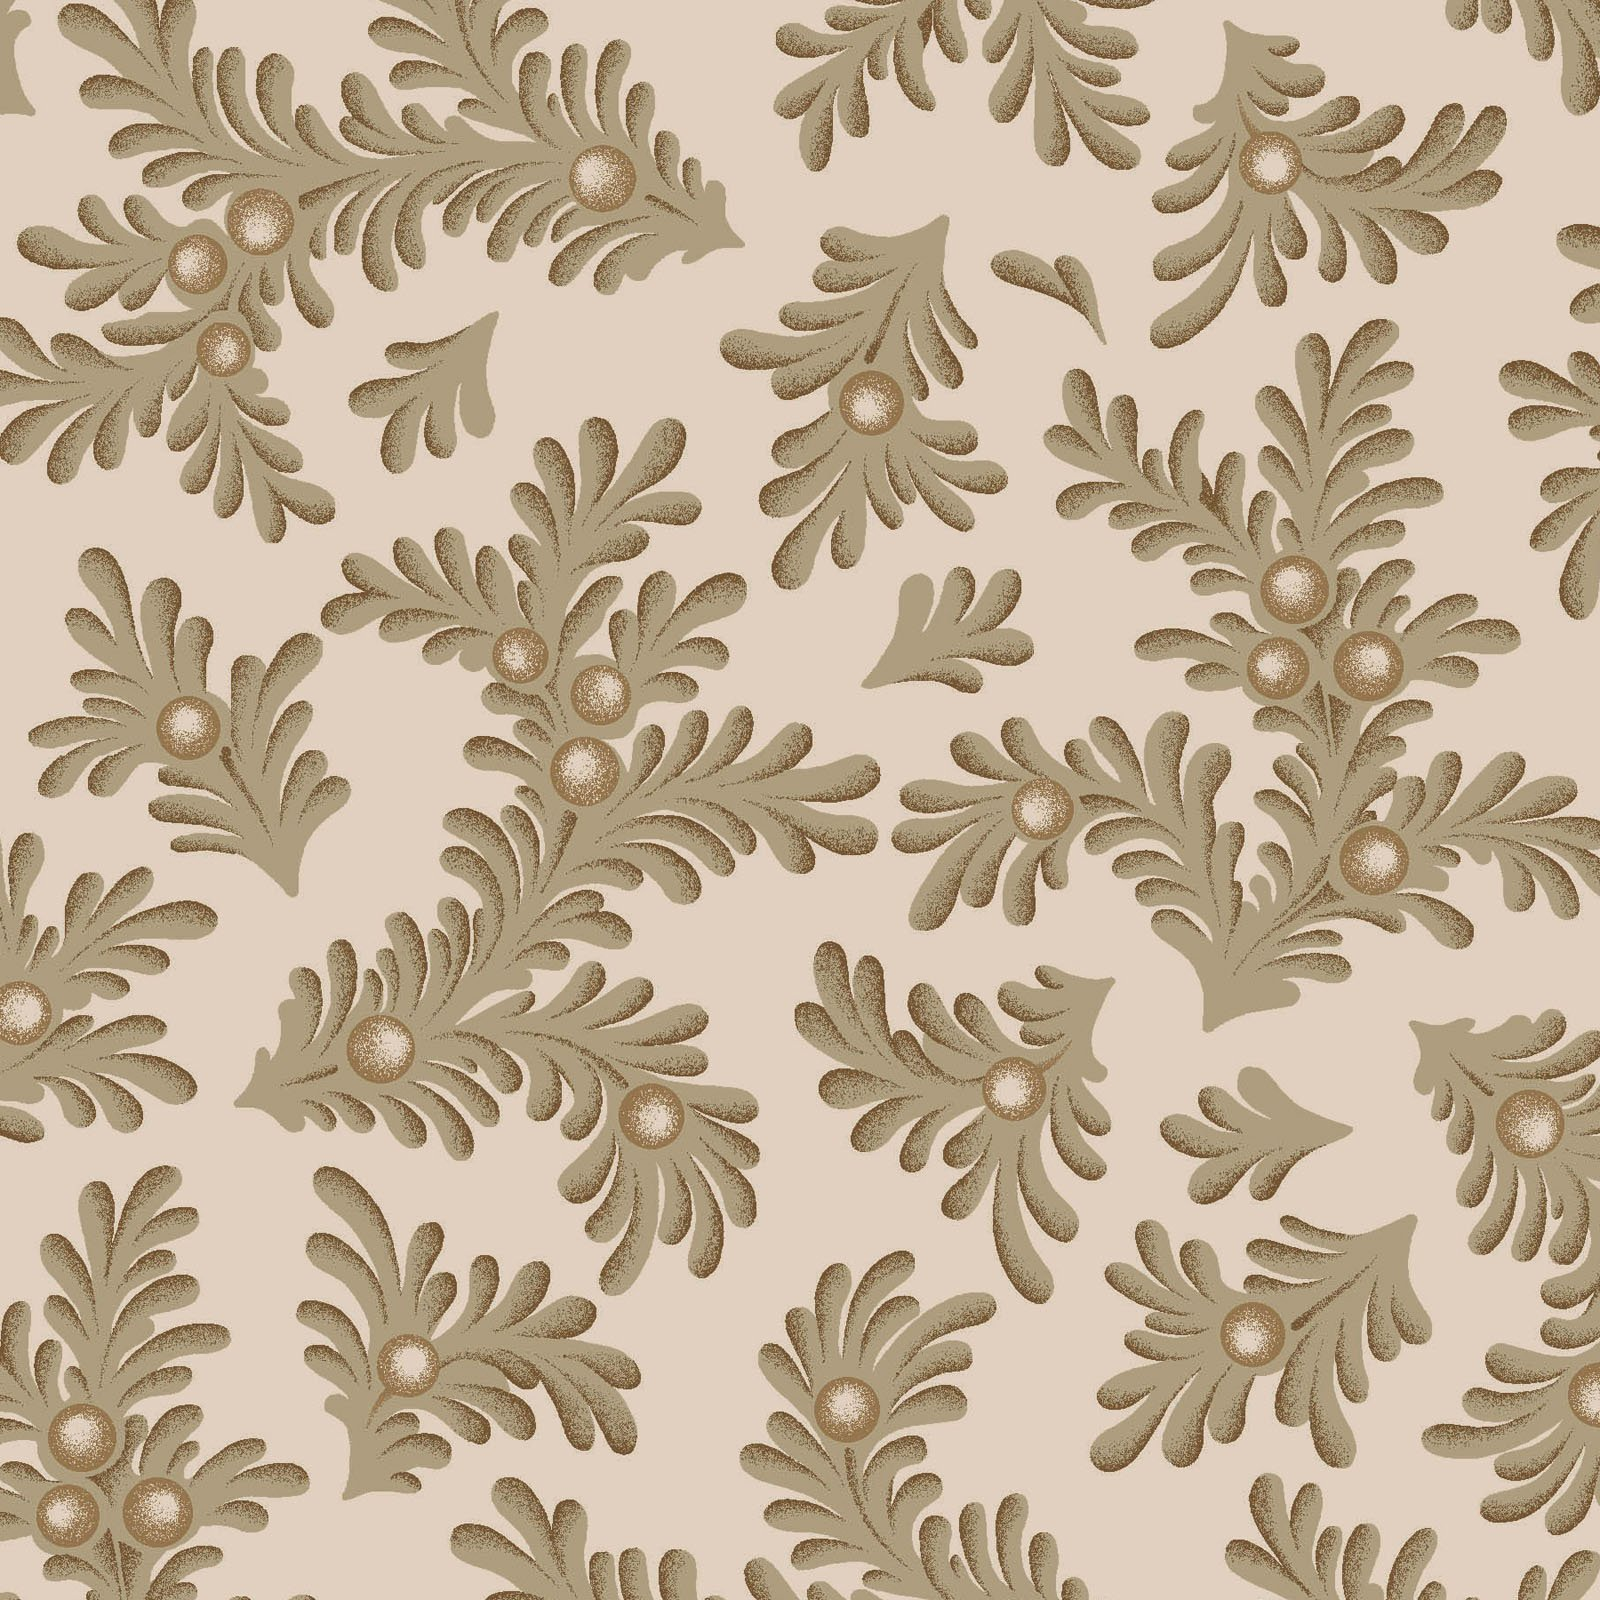 Ruby - Feathered Leaves - Tan